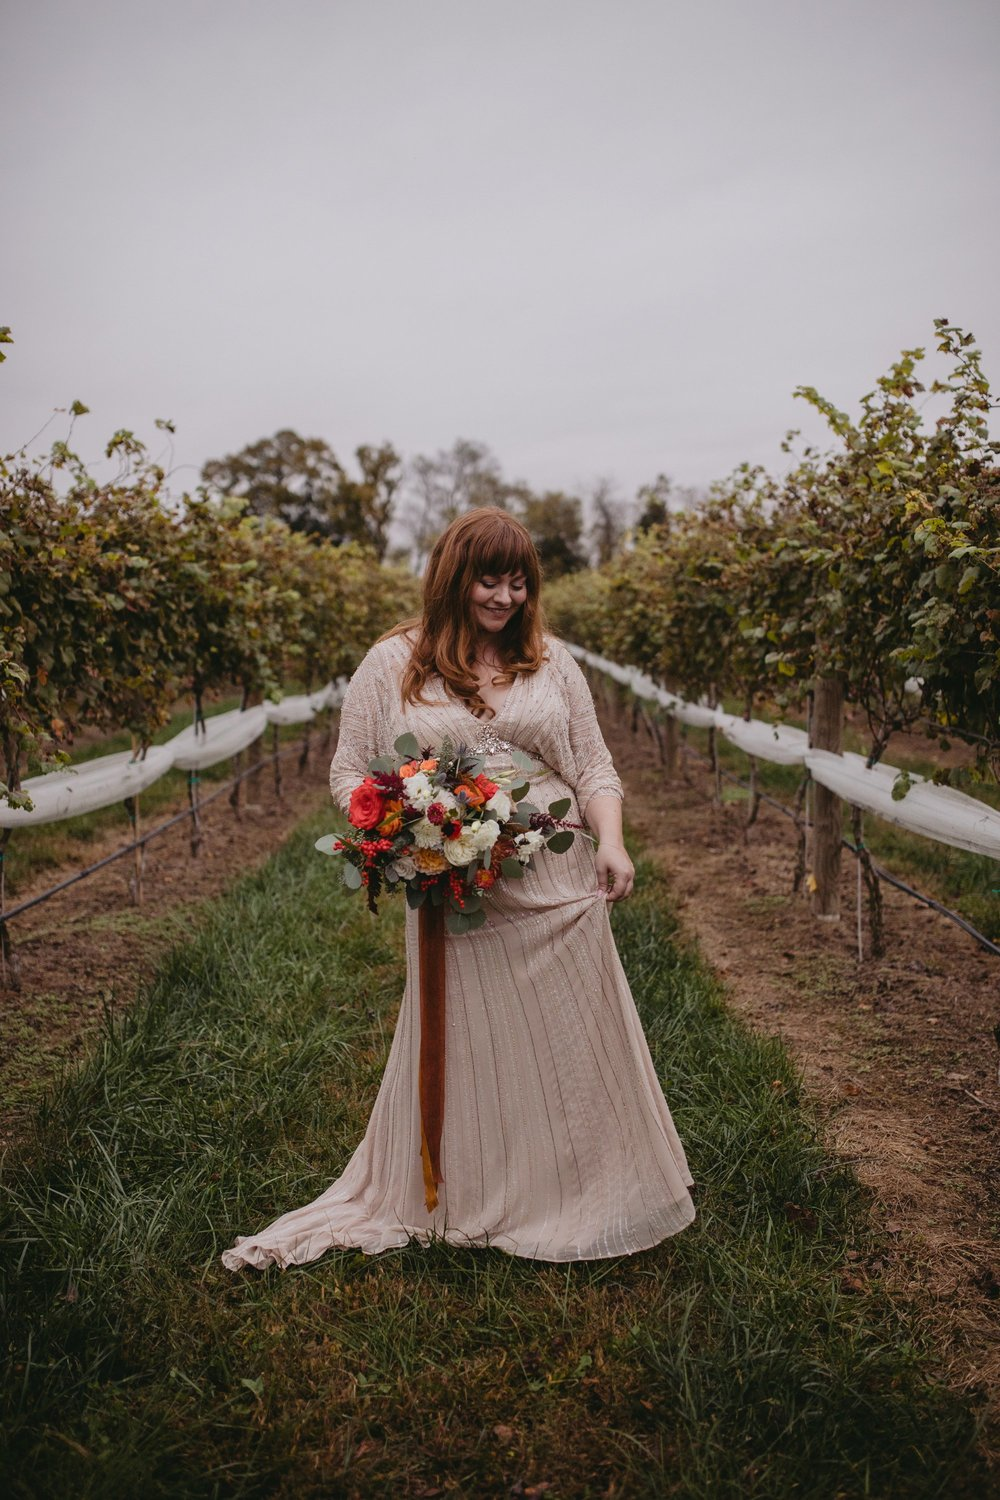 Autumn Richmond VA winery wedding at Upper Shirley Vineyards with lush garden florals and old Hollywood glamour winery bride